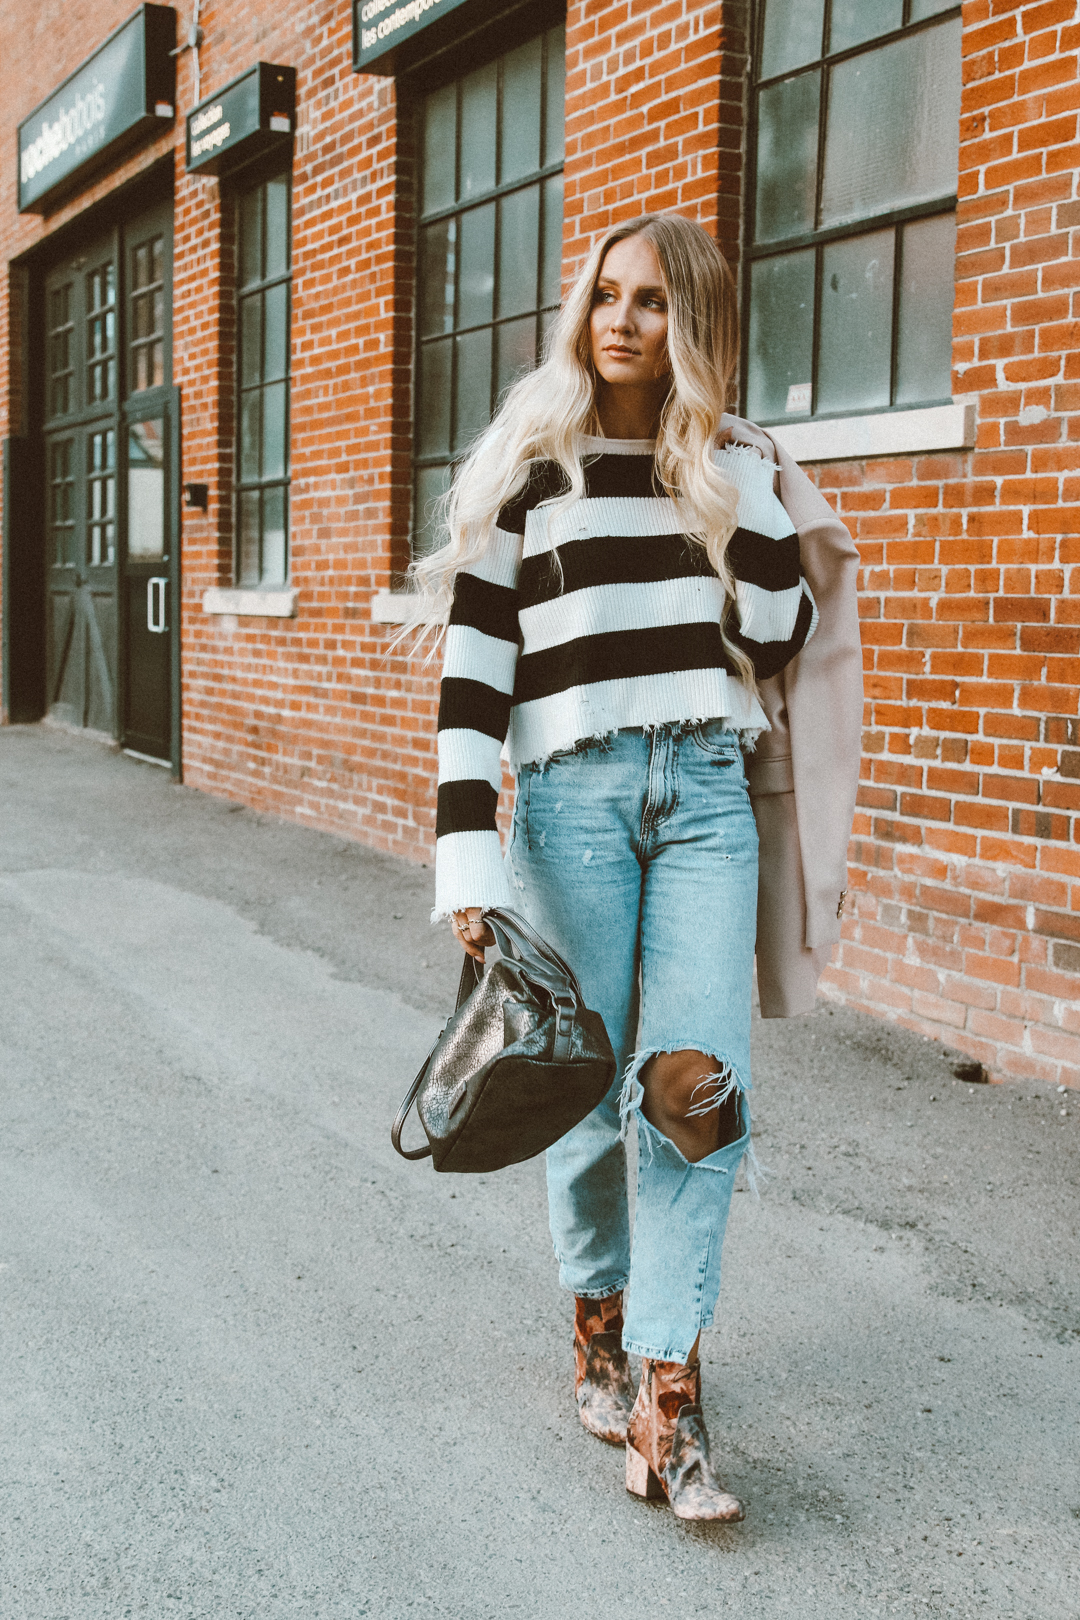 15c180527d Yara Striped Sweater Outfit Zara Ripped Mom Jeans Casual Tamaris velvet  booties-4